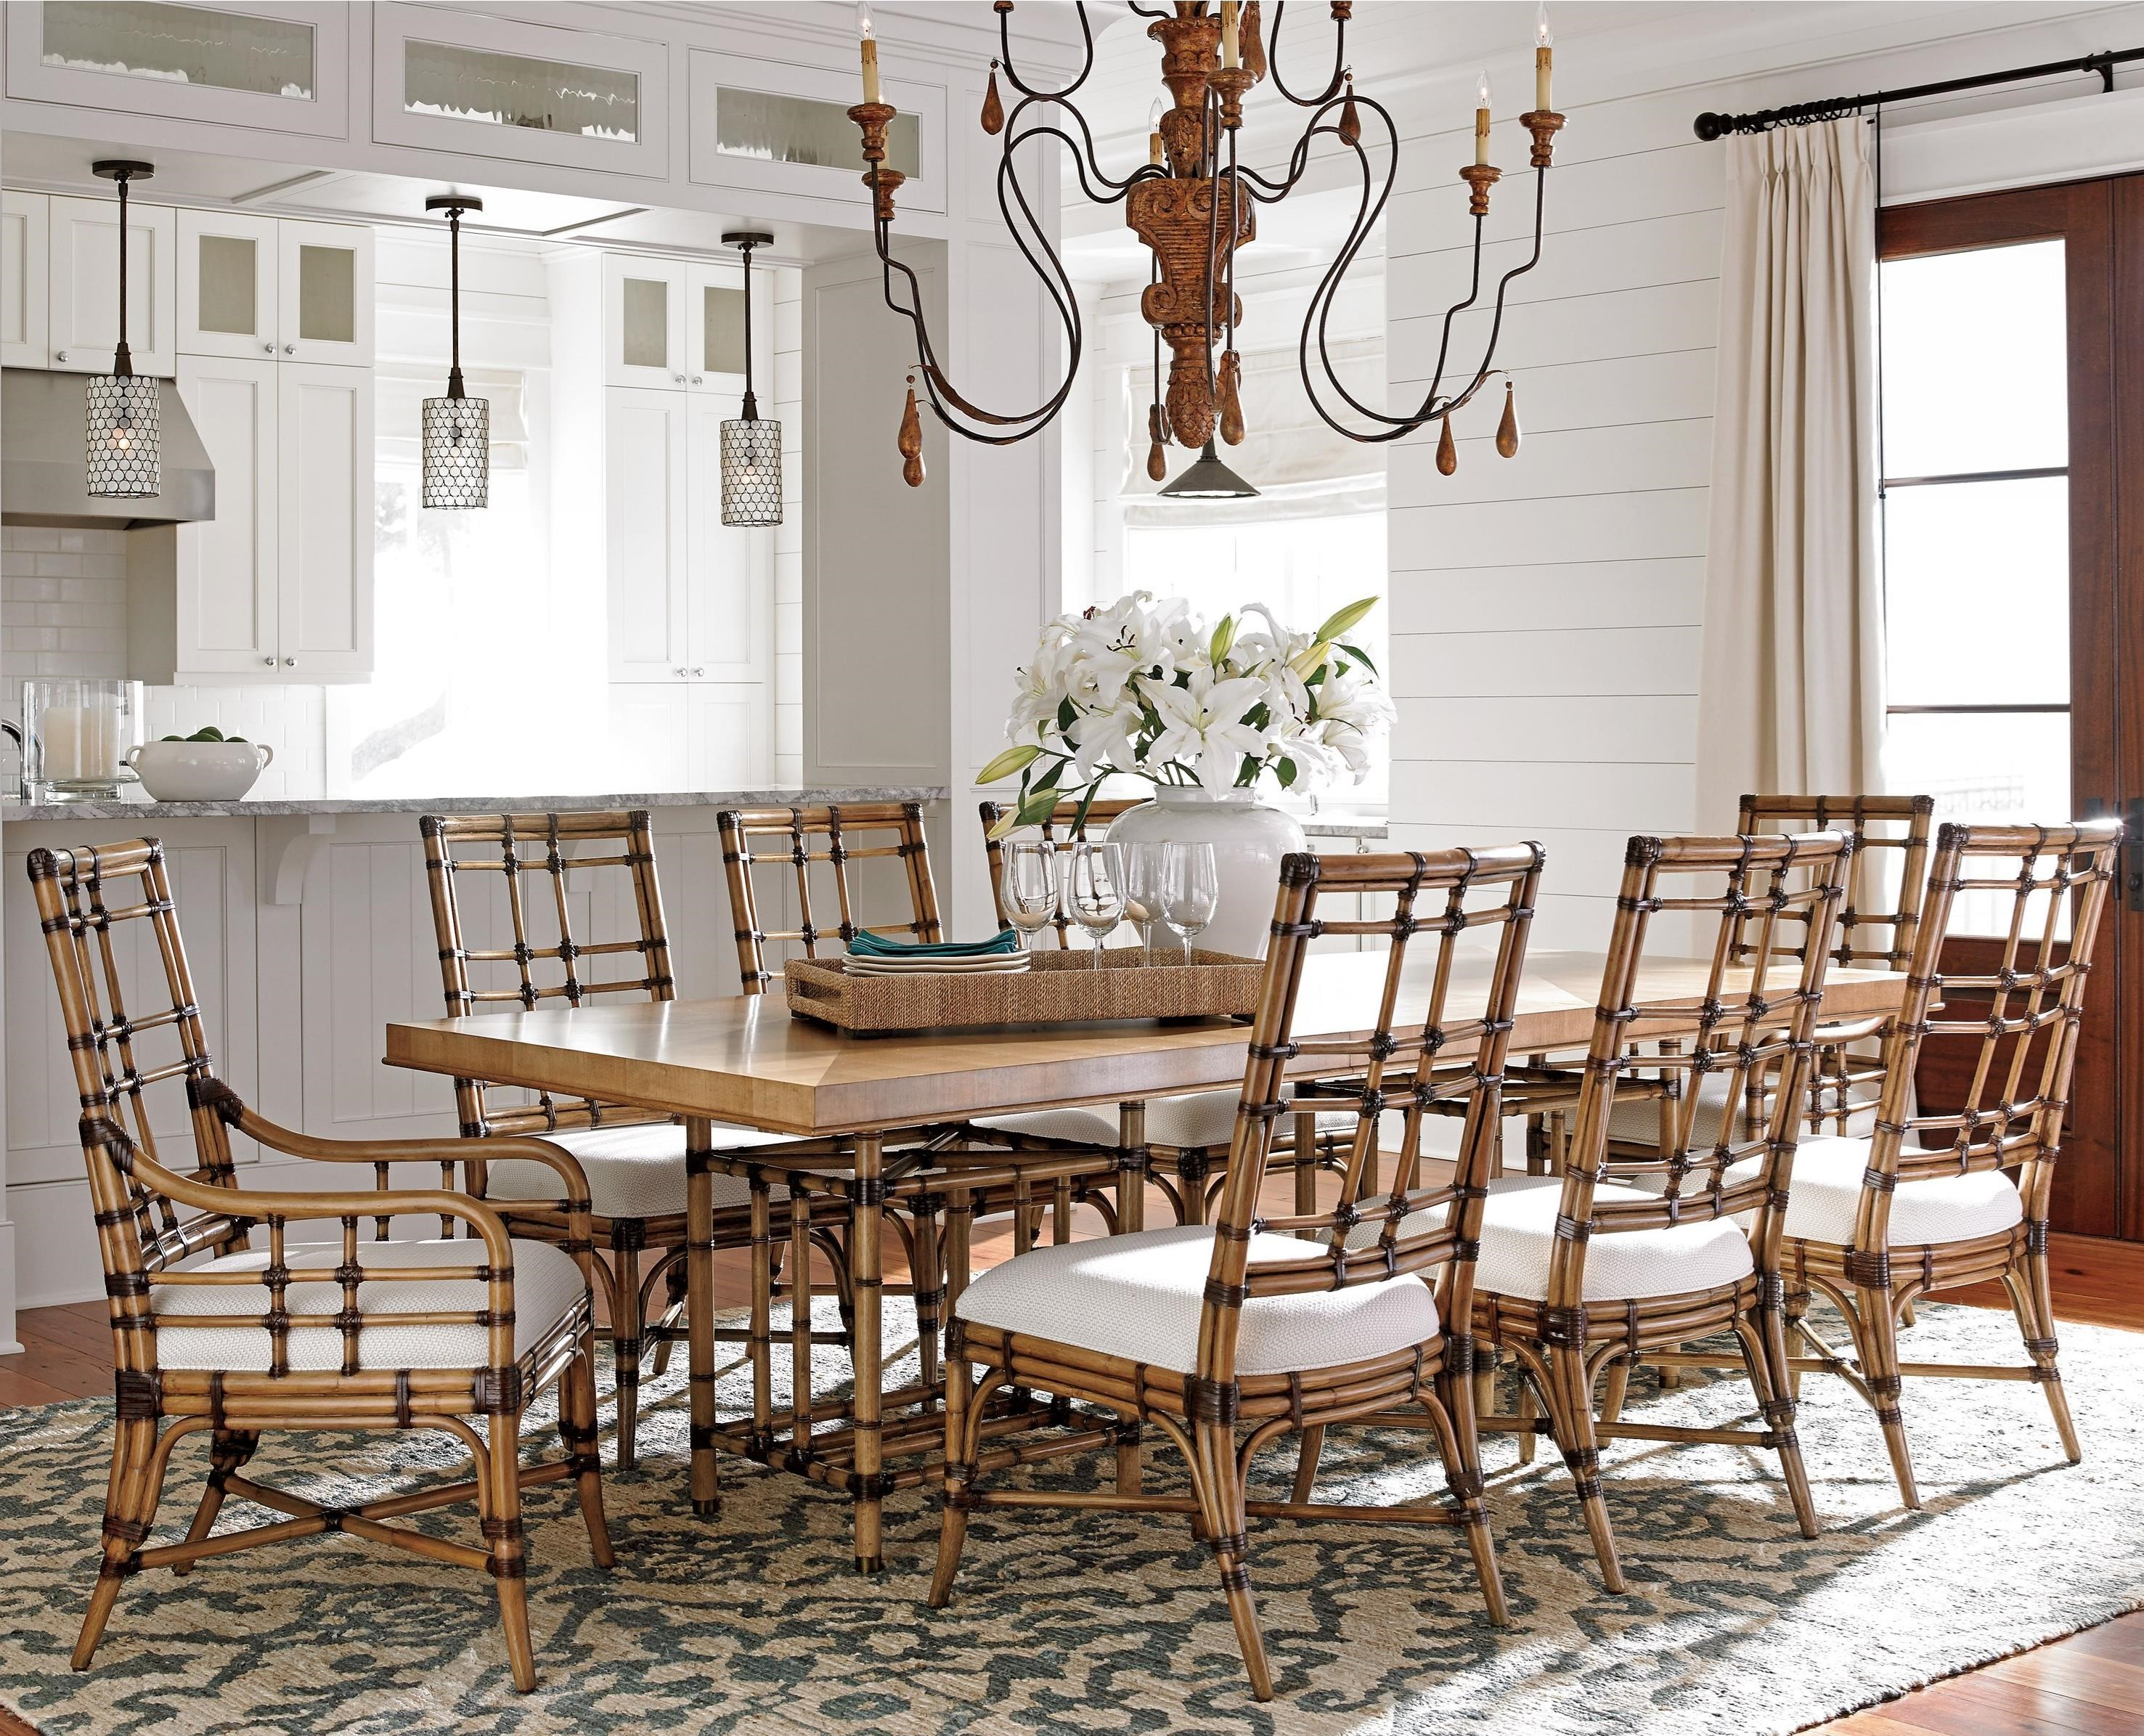 Twin Palms 9 Pc Dining Set by Tommy Bahama Home at Baer's Furniture